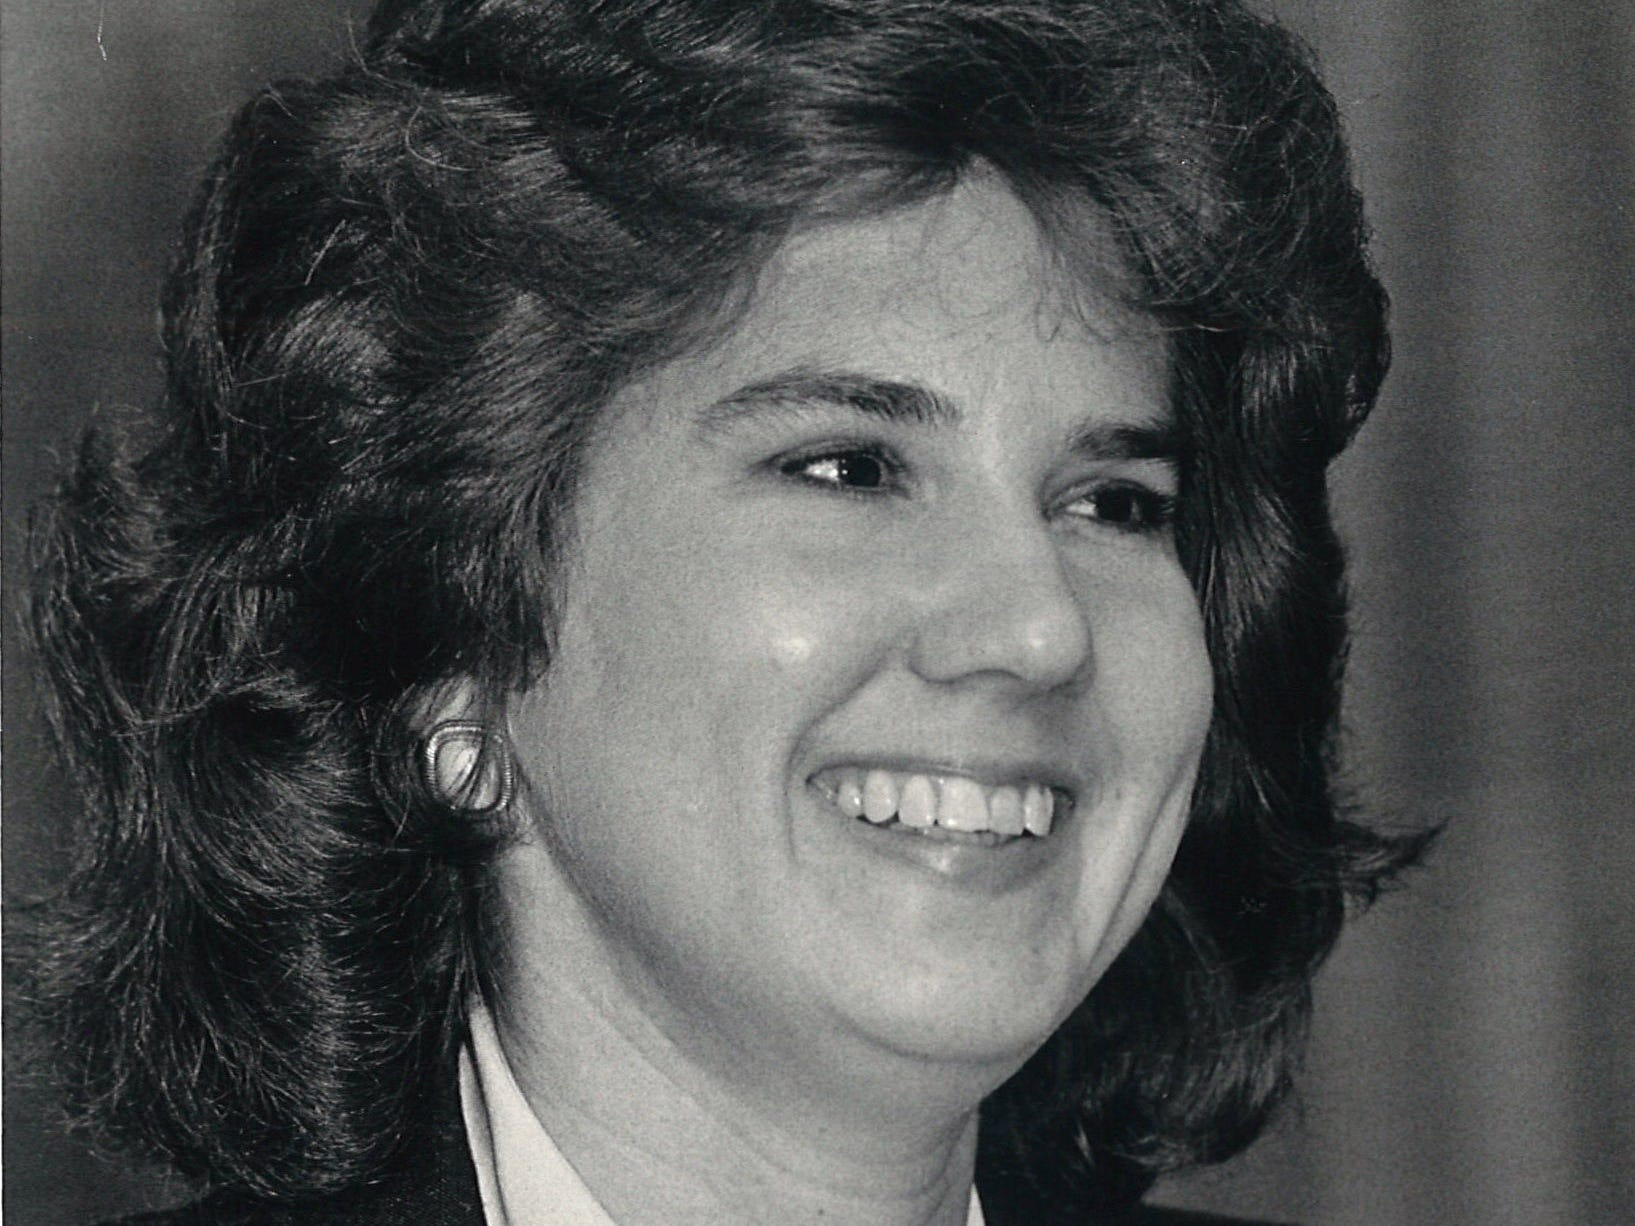 Paula Waddle ran for a court-at-law seat in February 1986. She was the first woman to serve as a municipal court judge in Corpus Christi when she was appointed in 1982.